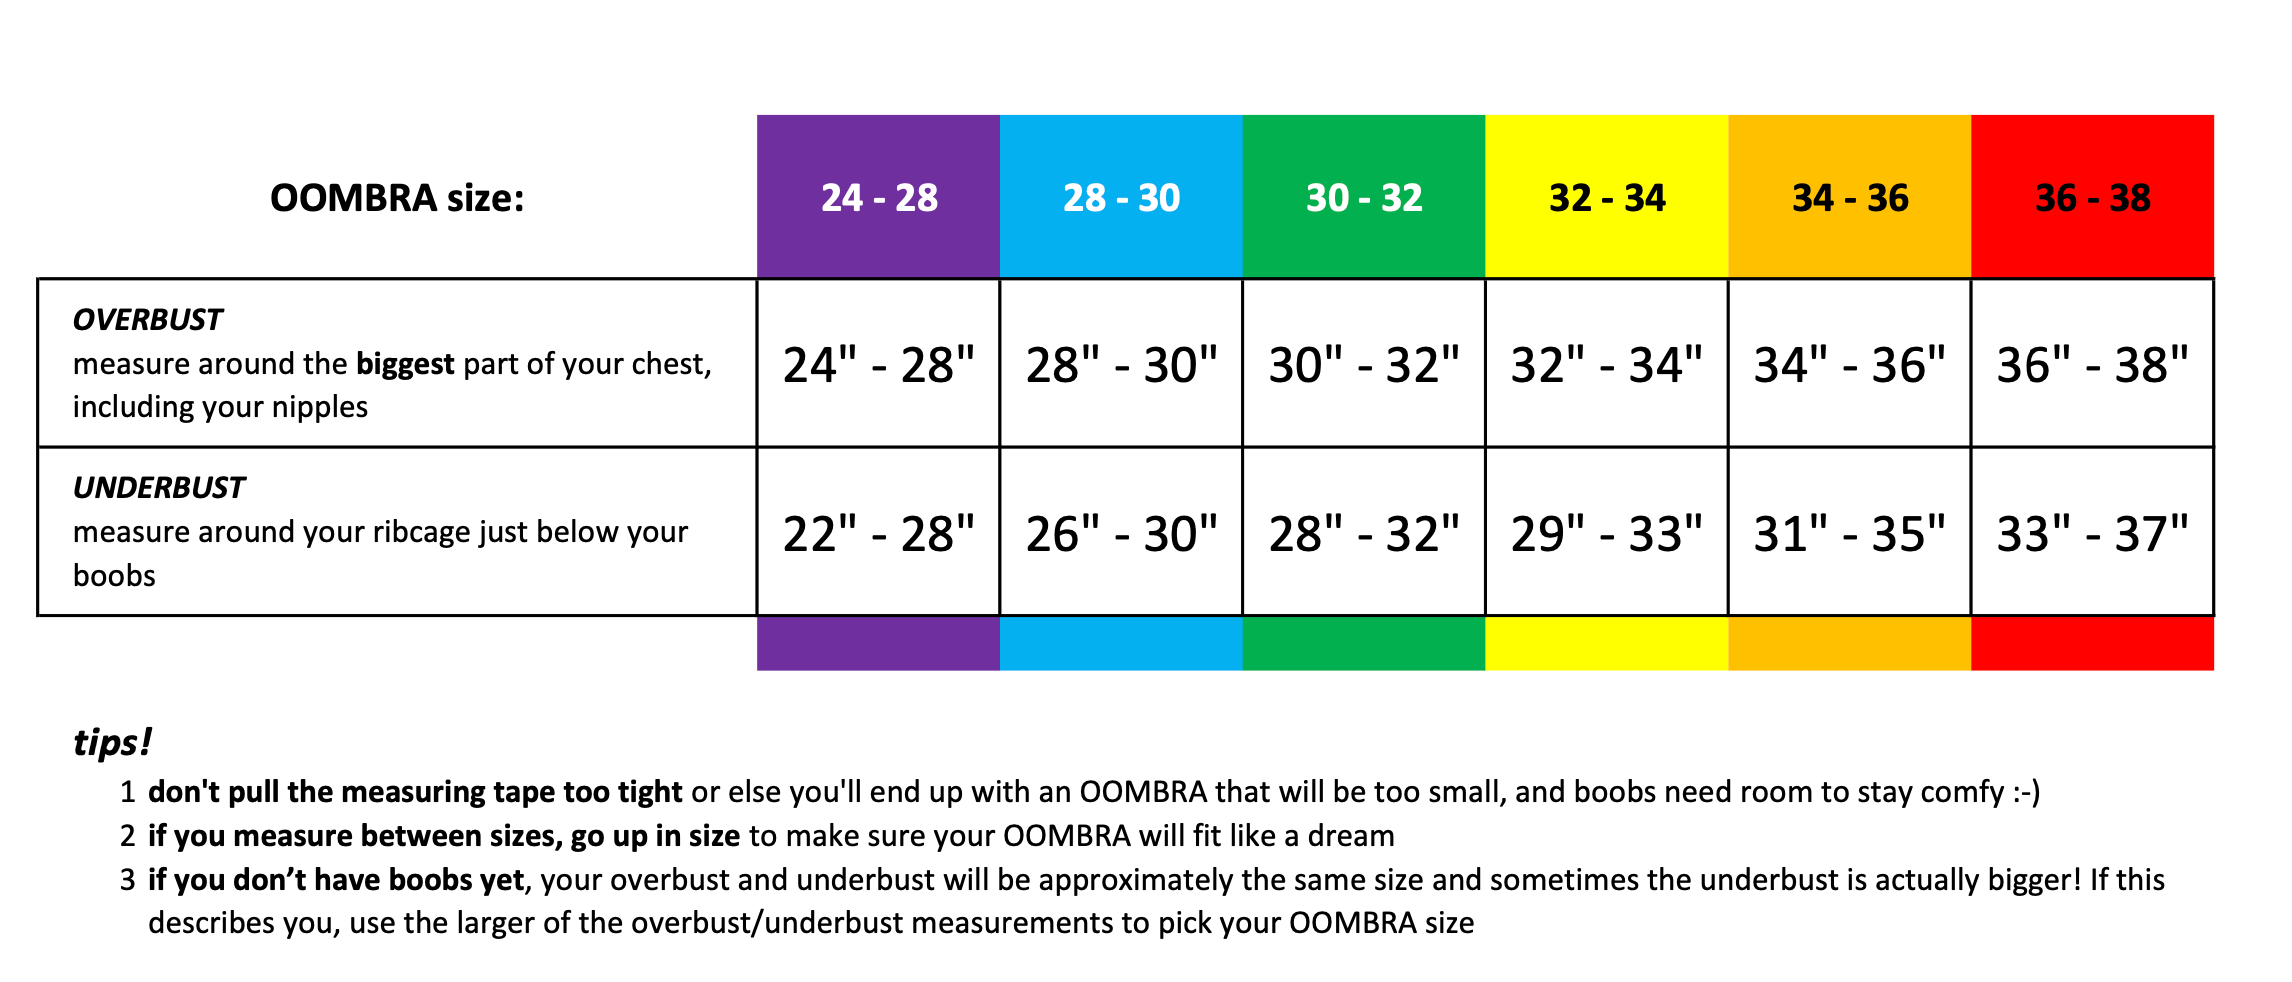 OOMBRA sizing chart